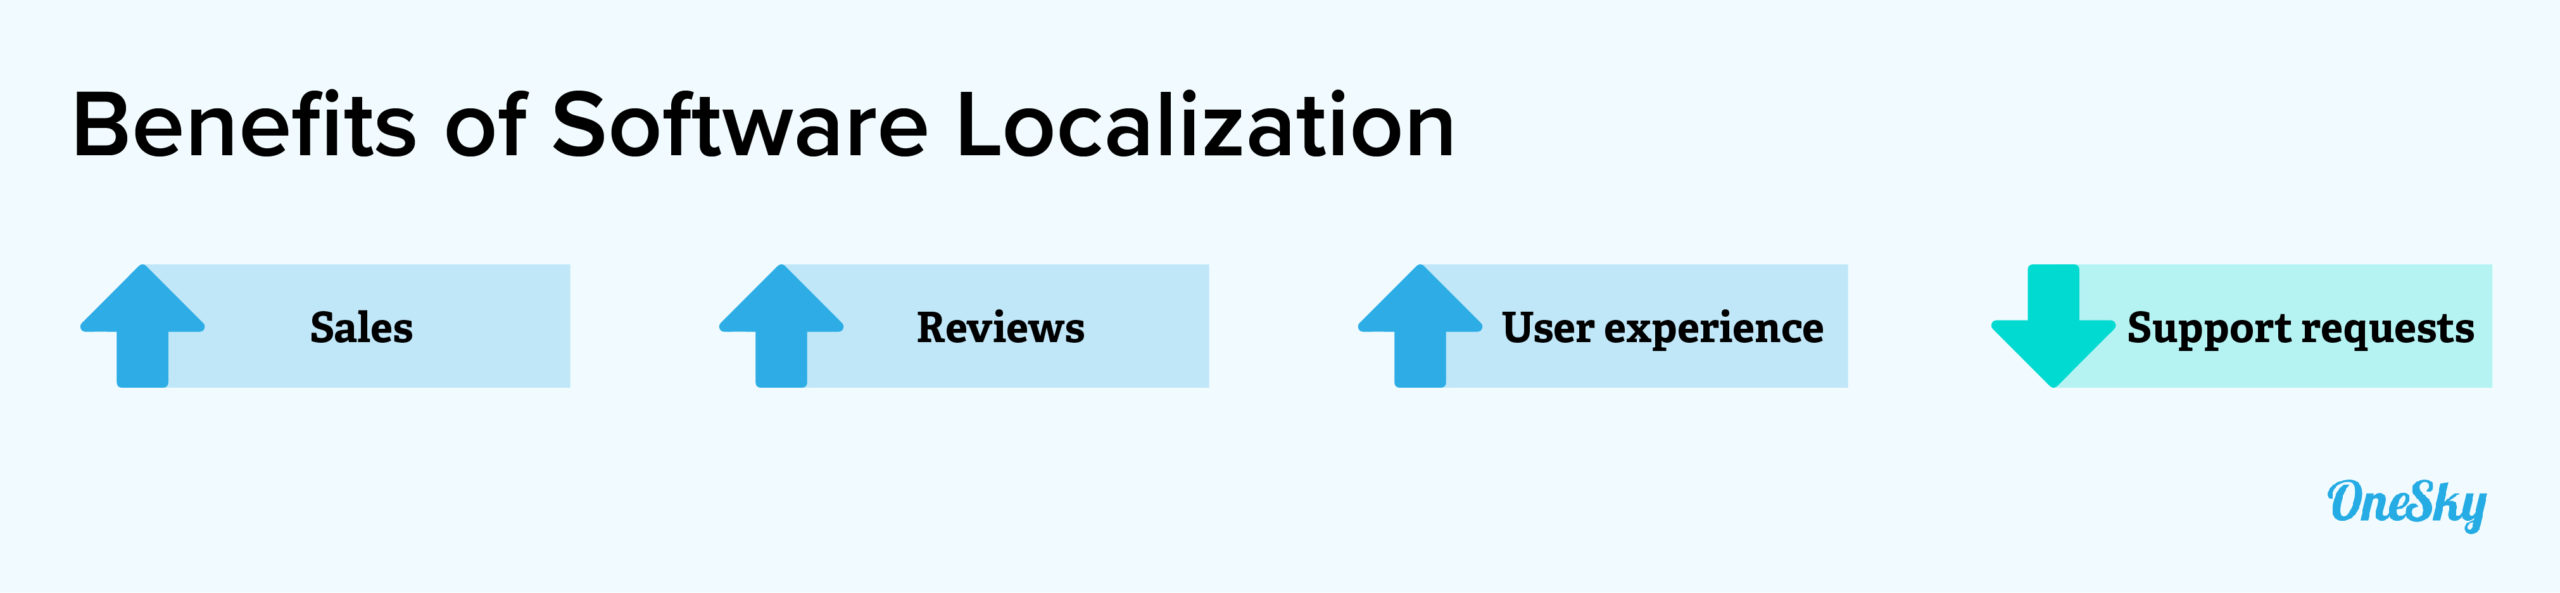 benefits of Software Localization